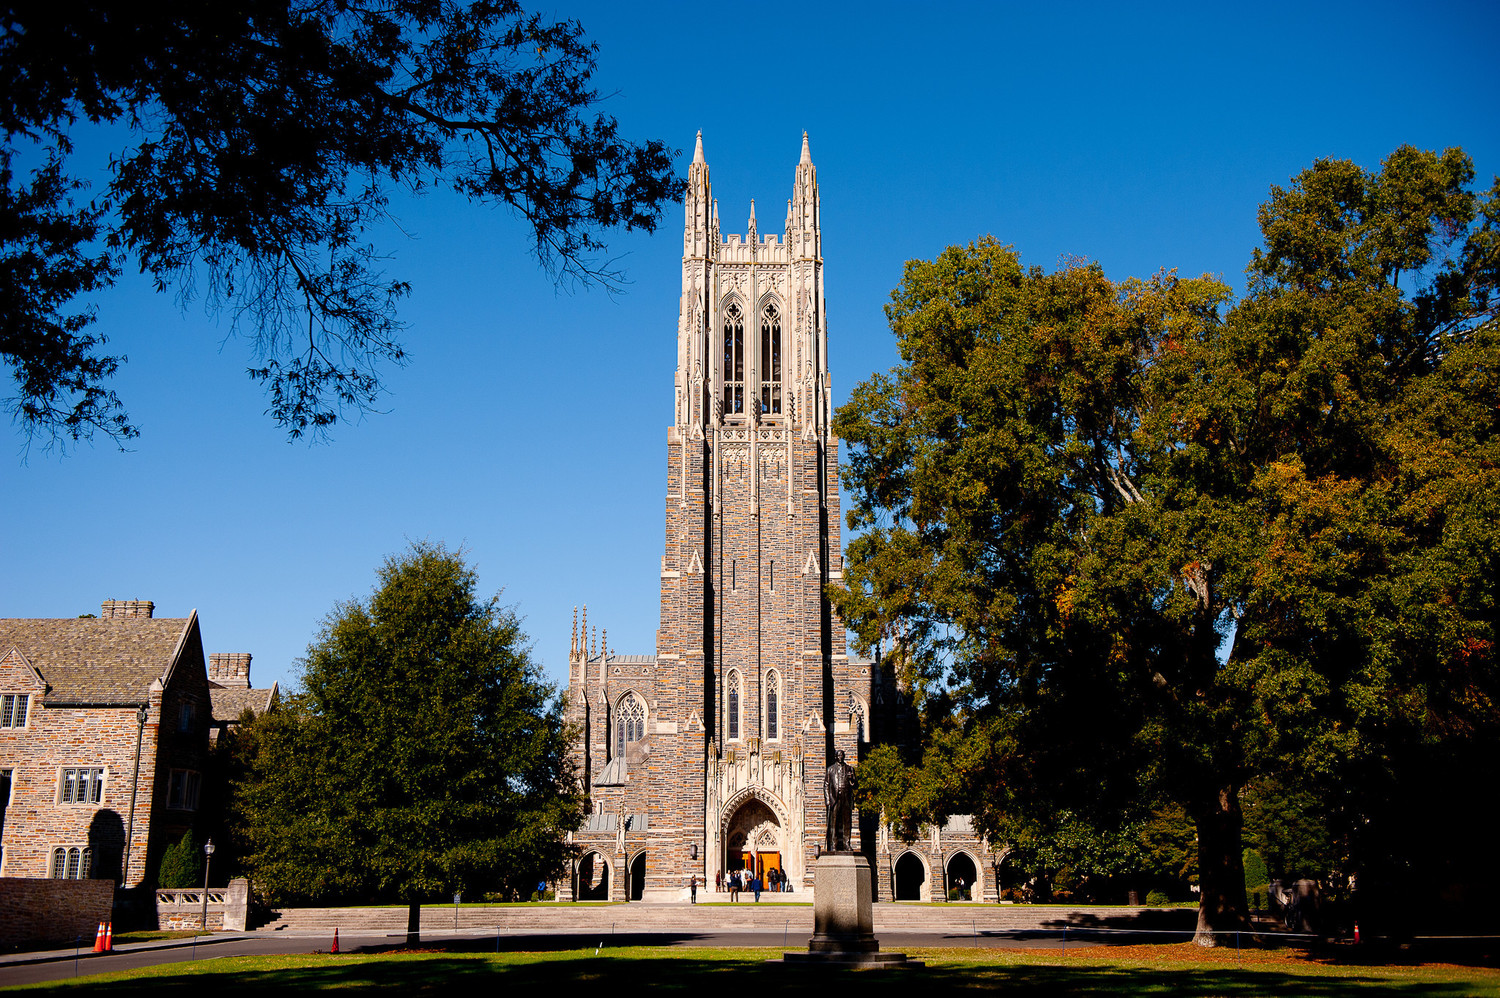 Architecture, Bell Tower, Clock Tower, Tower, Building, Housing, Villa, Campus, Cottage, Brick